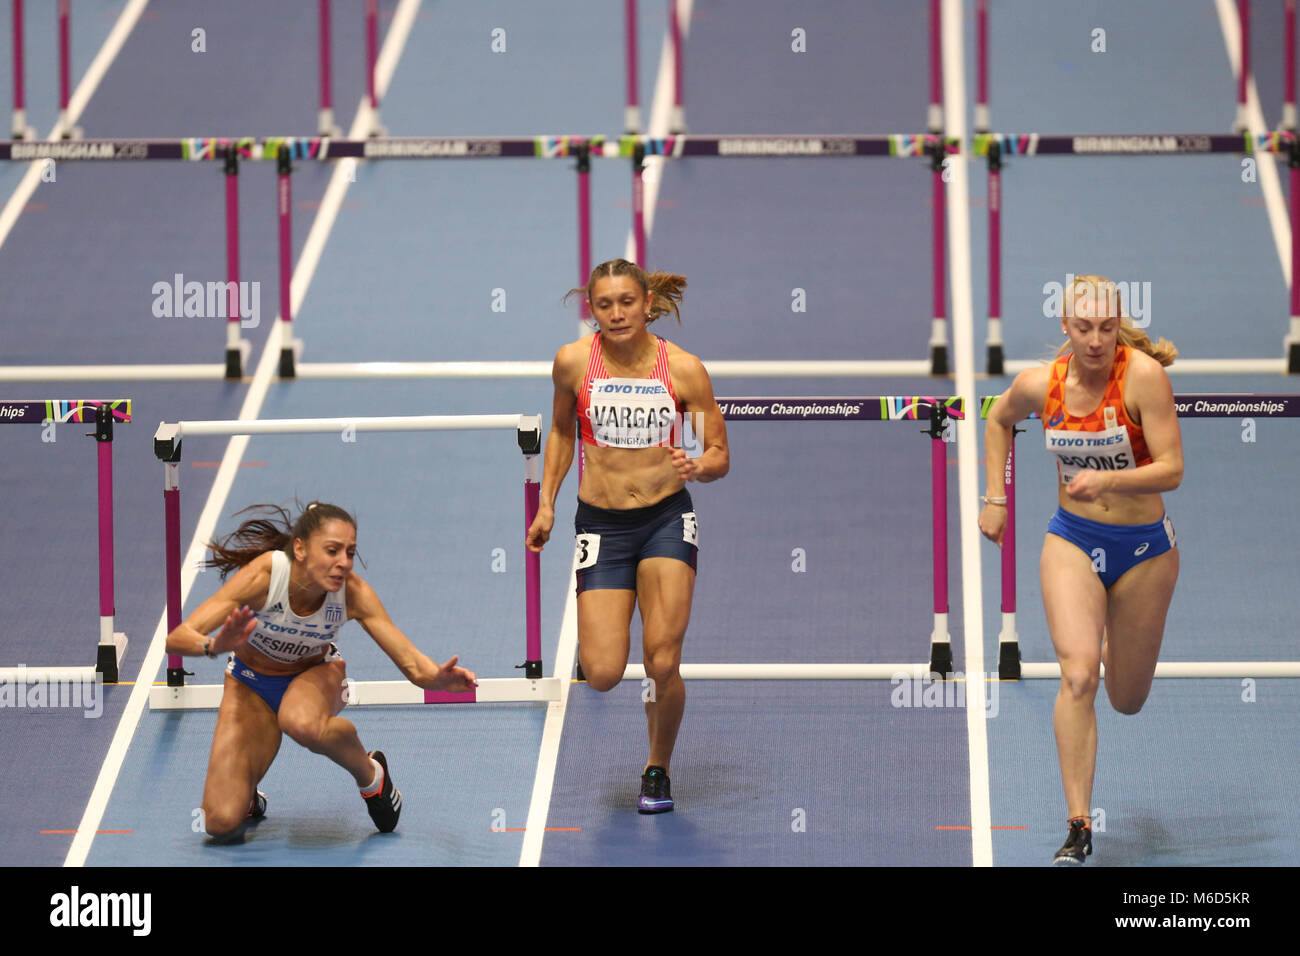 Birmingham, UK. 2nd March, 2018. Elena PESRIDOU (Greece) hits her hurdle and falls hard during the IAAF World Indoor - Stock Image